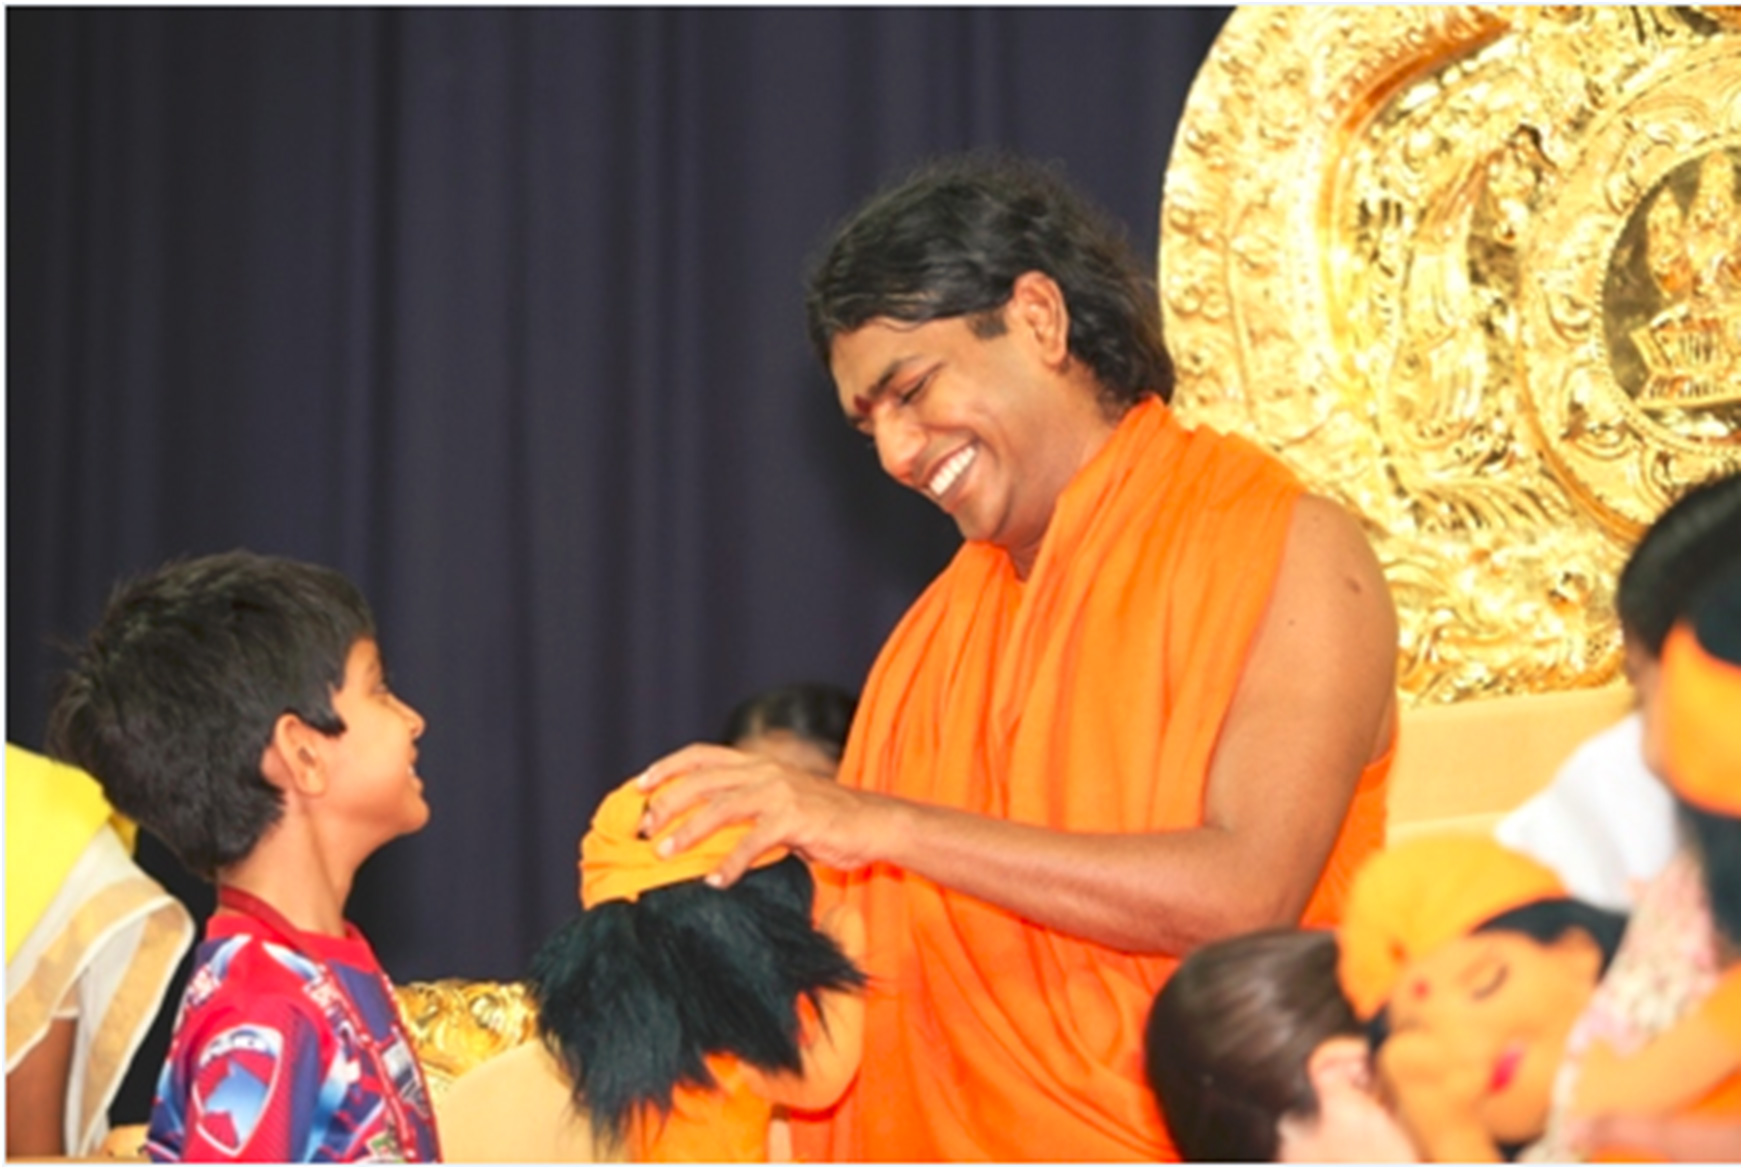 Swamiji laughing with the children and blessing their toys